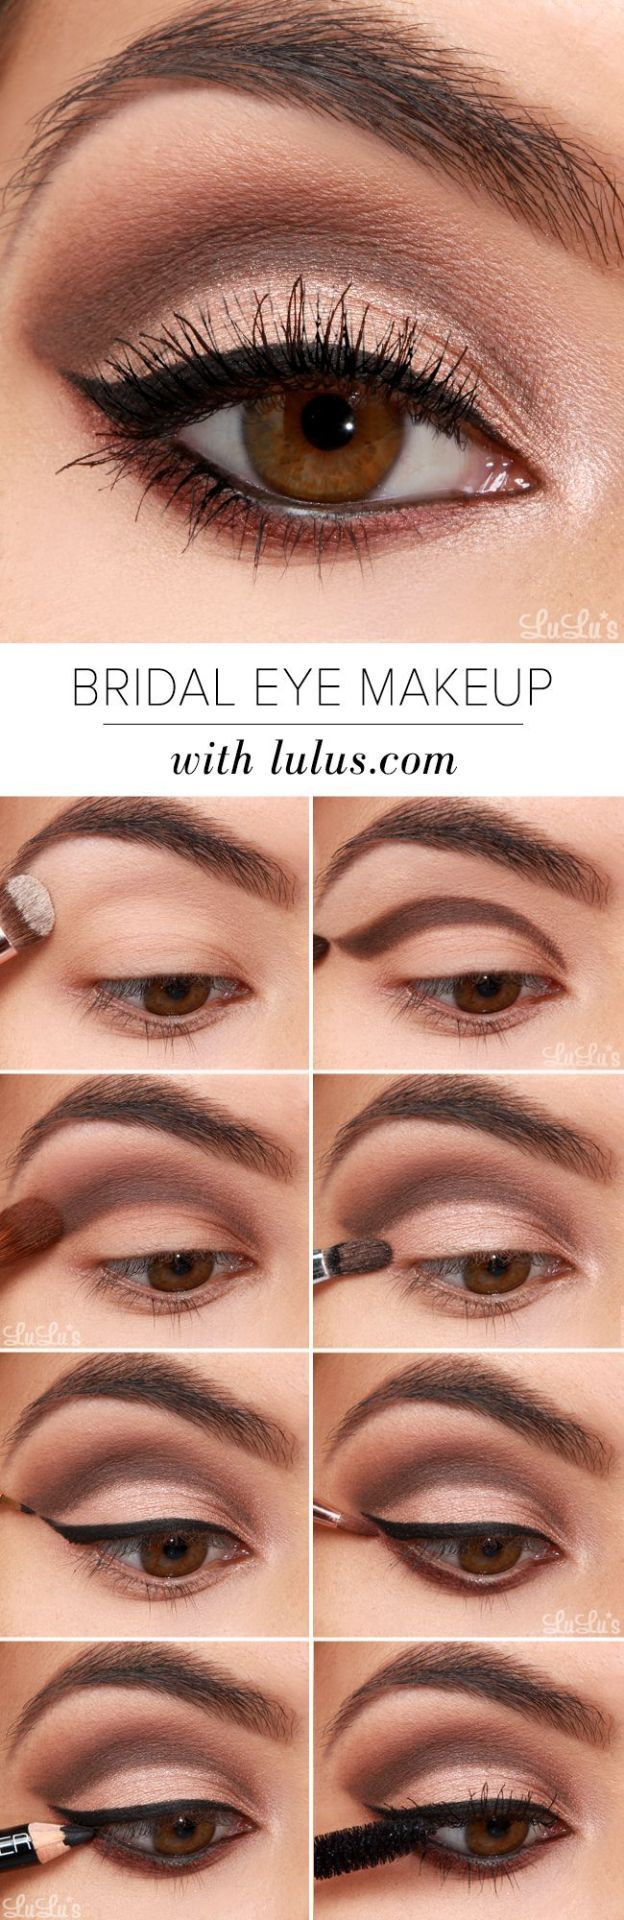 We heart it how to bridal eye makeup tutorial mac olhos we heart it how to bridal eye makeup tutorial baditri Images